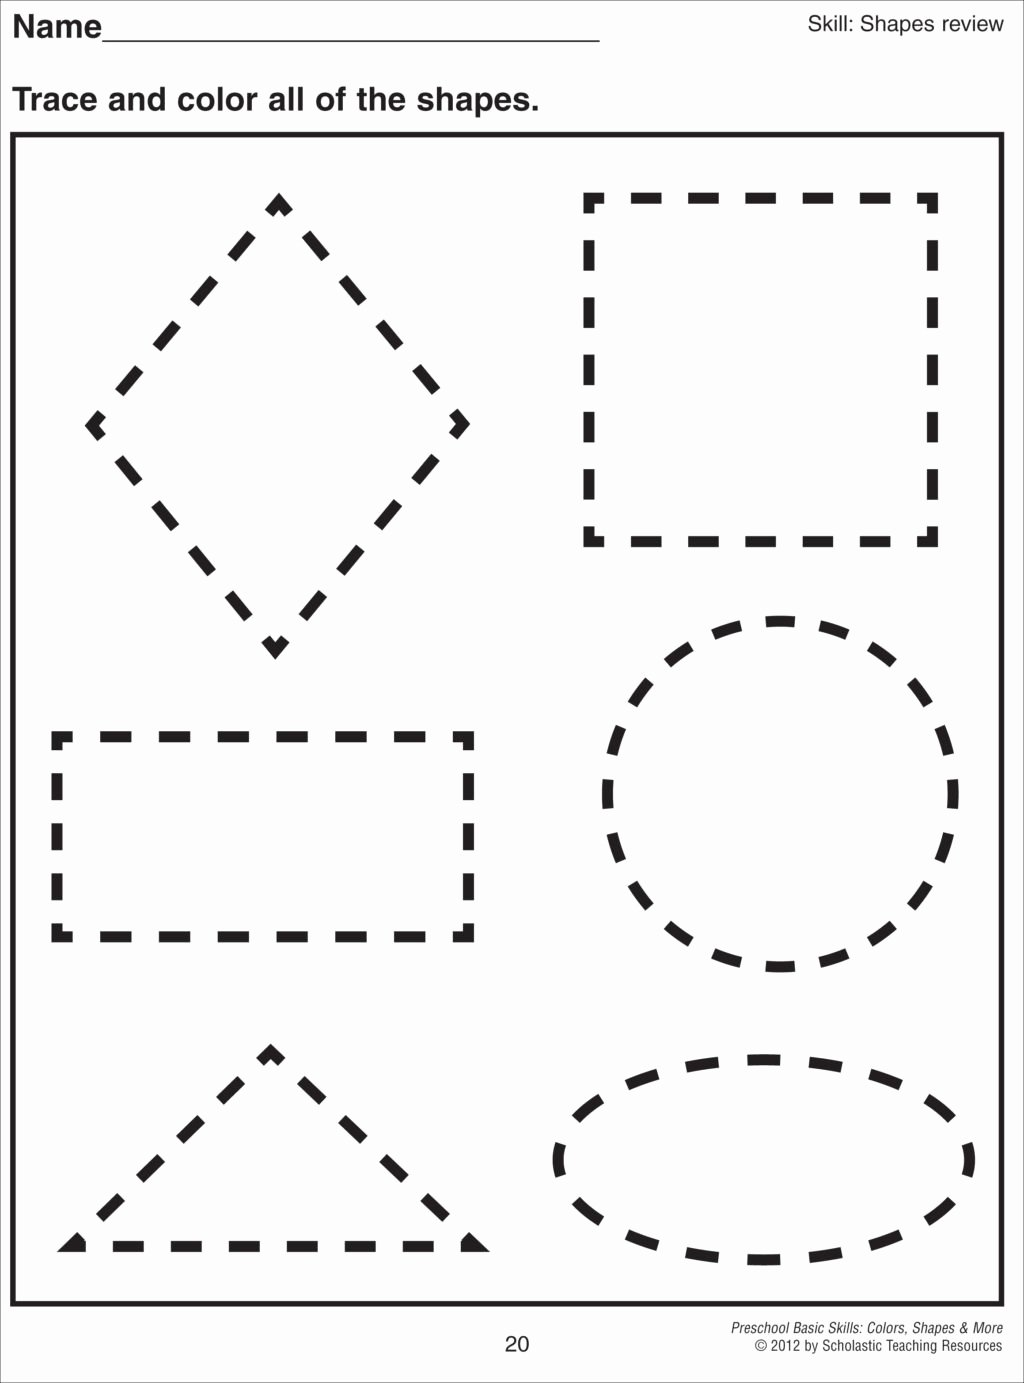 Free Worksheets for Preschoolers Shapes Kids Worksheet Math Worksheet About Preschool Shapes